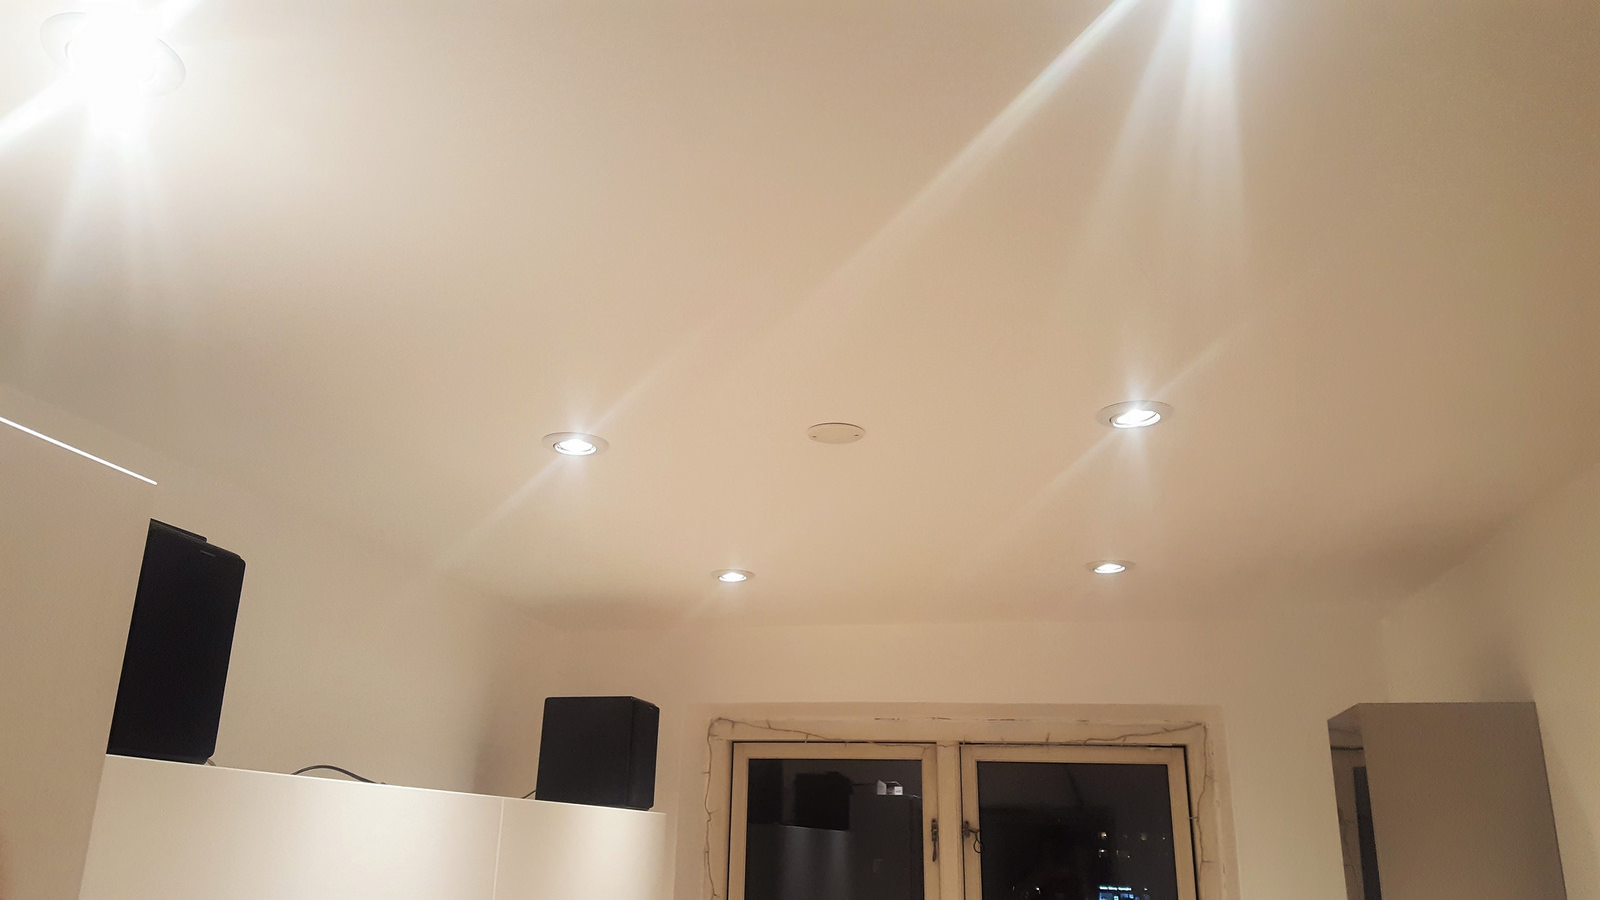 Guide Lower Ceiling And Install Led Downlights Nordic